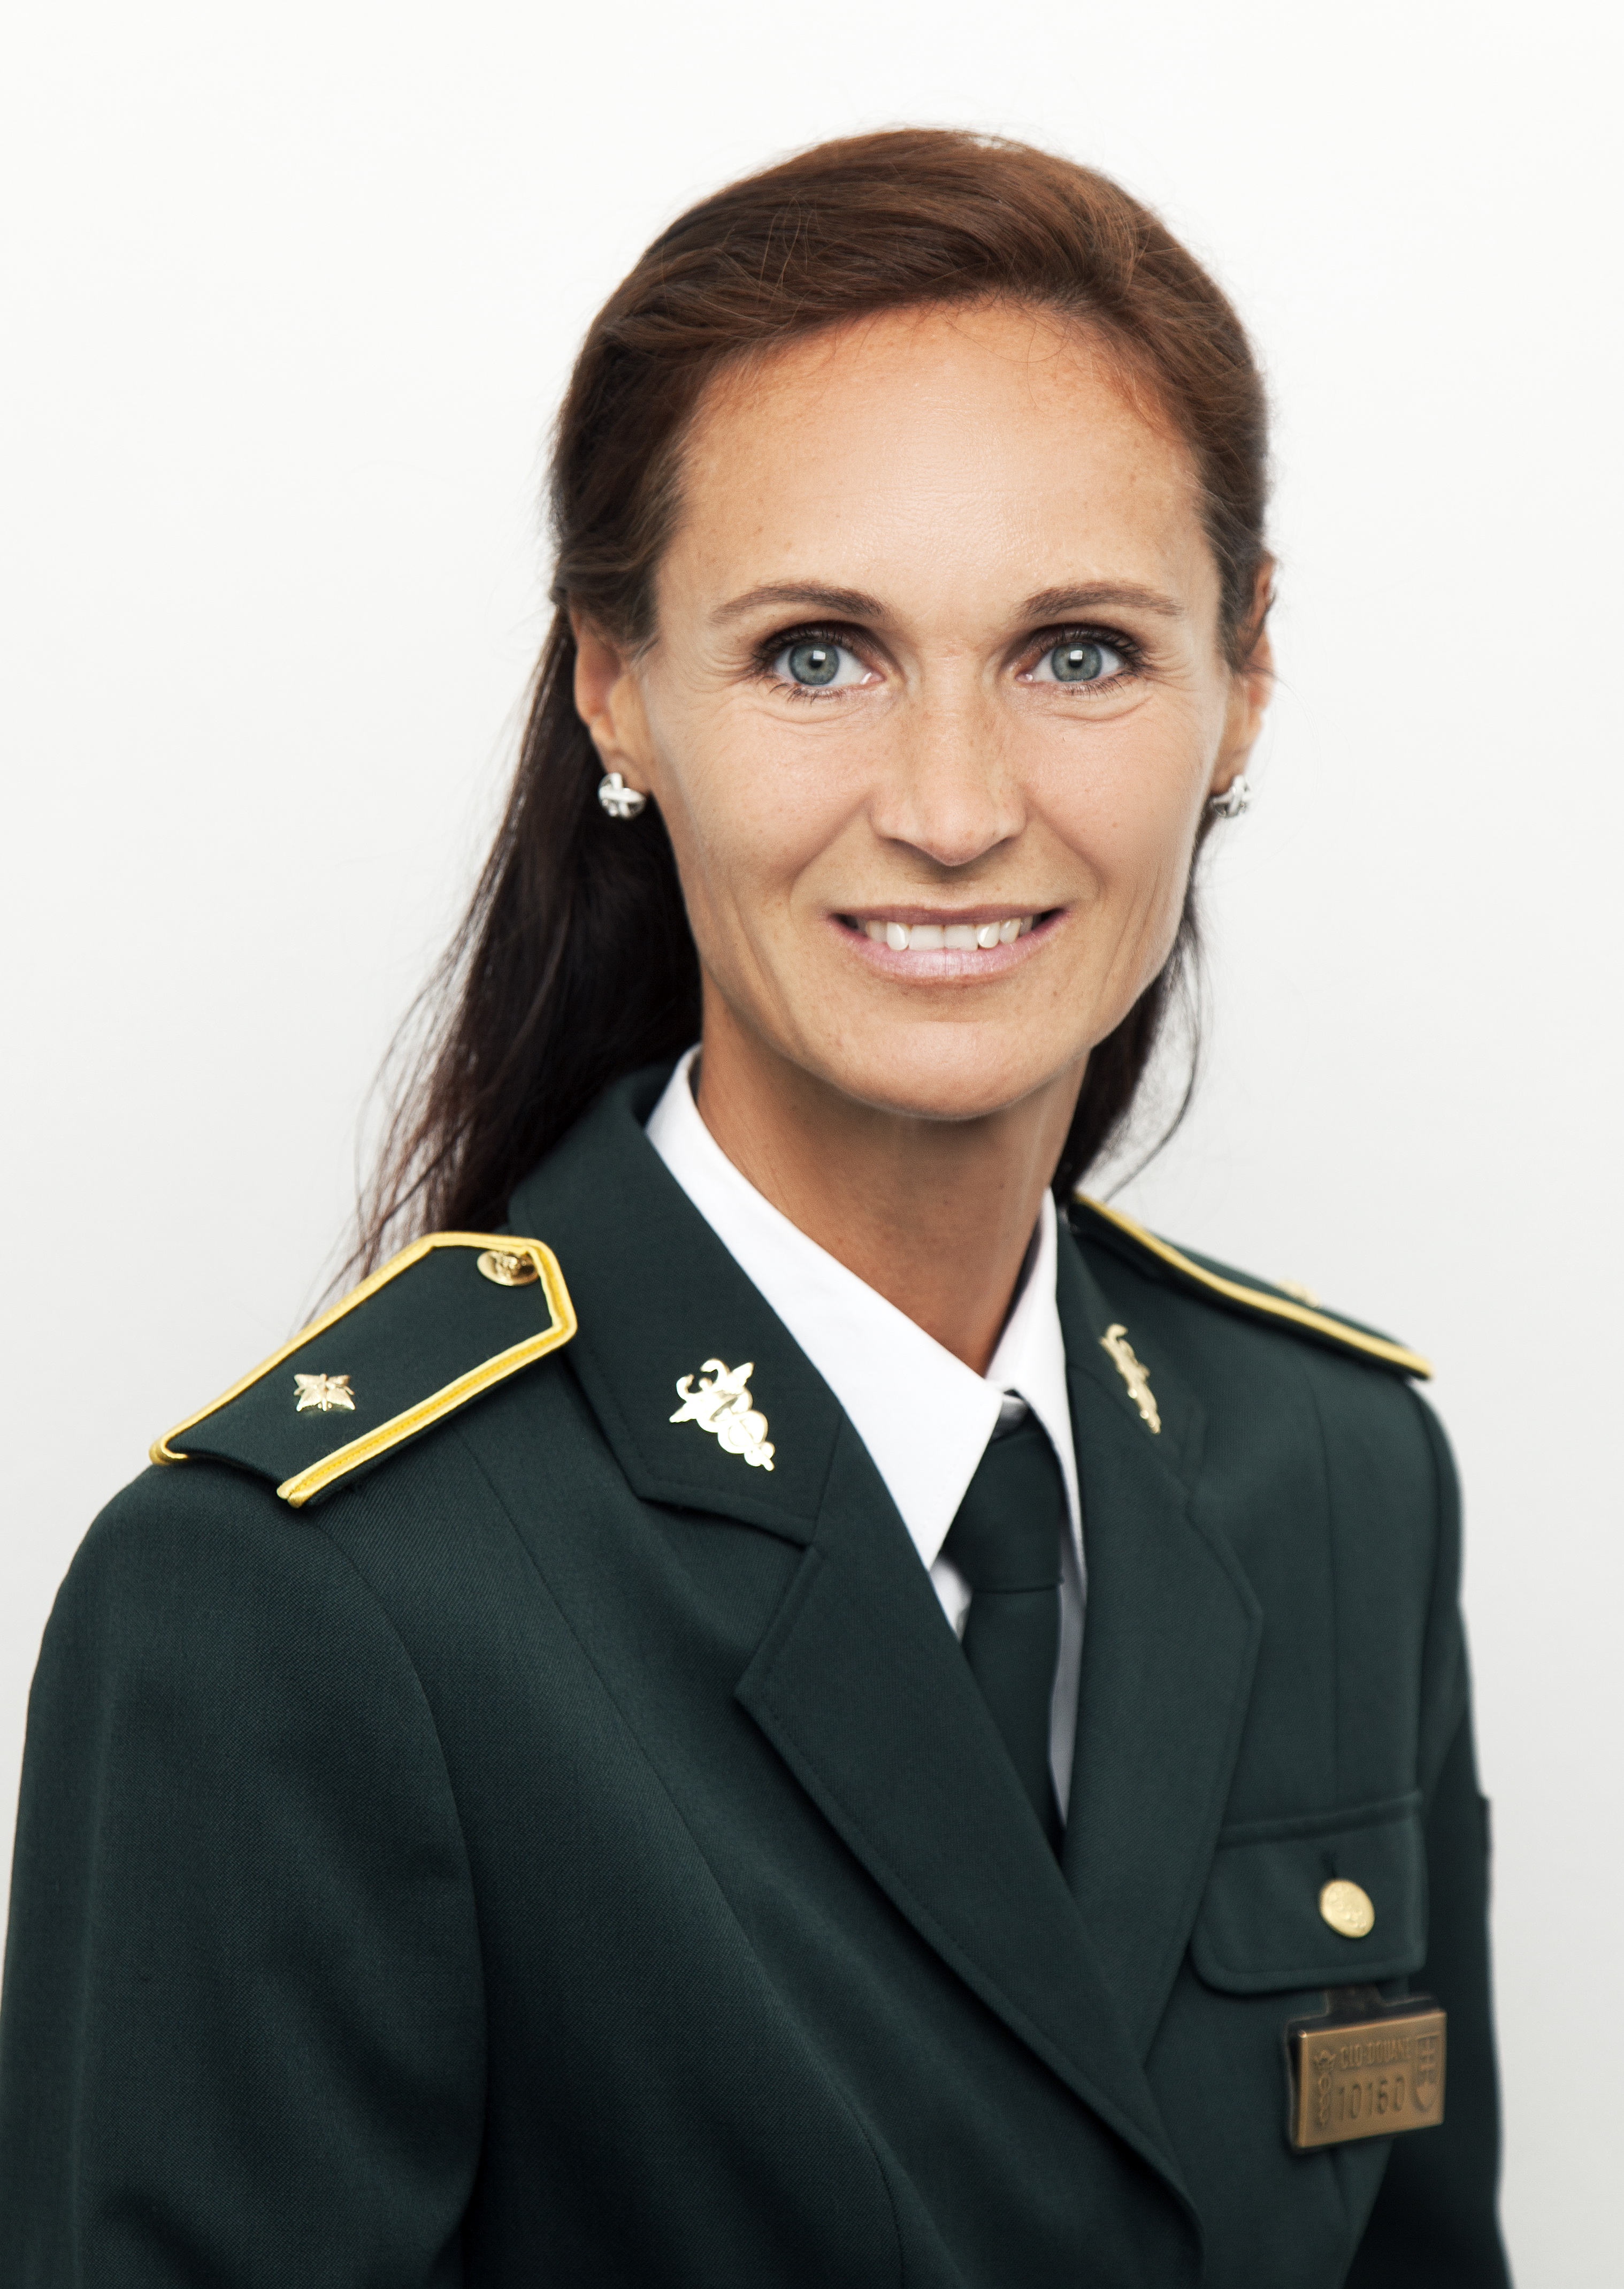 Spokeswoman Customs Office, Katarína Podhorová